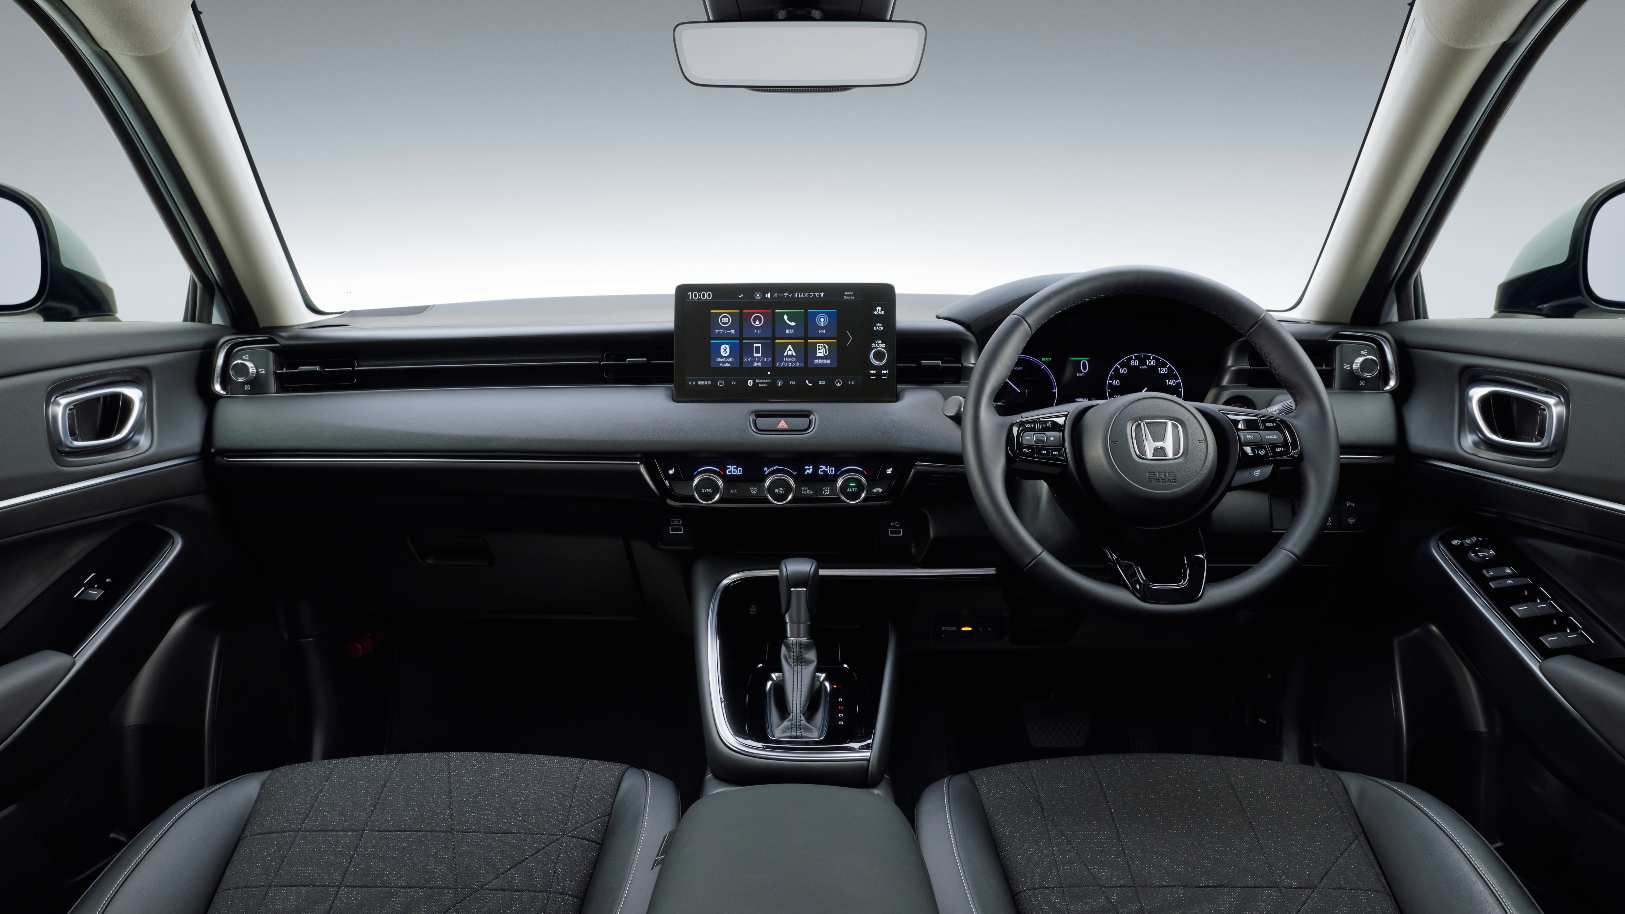 Floating 8.0-inch touchscreen takes centre stage on the new Honda HR-V's dashboard. Image: Honda